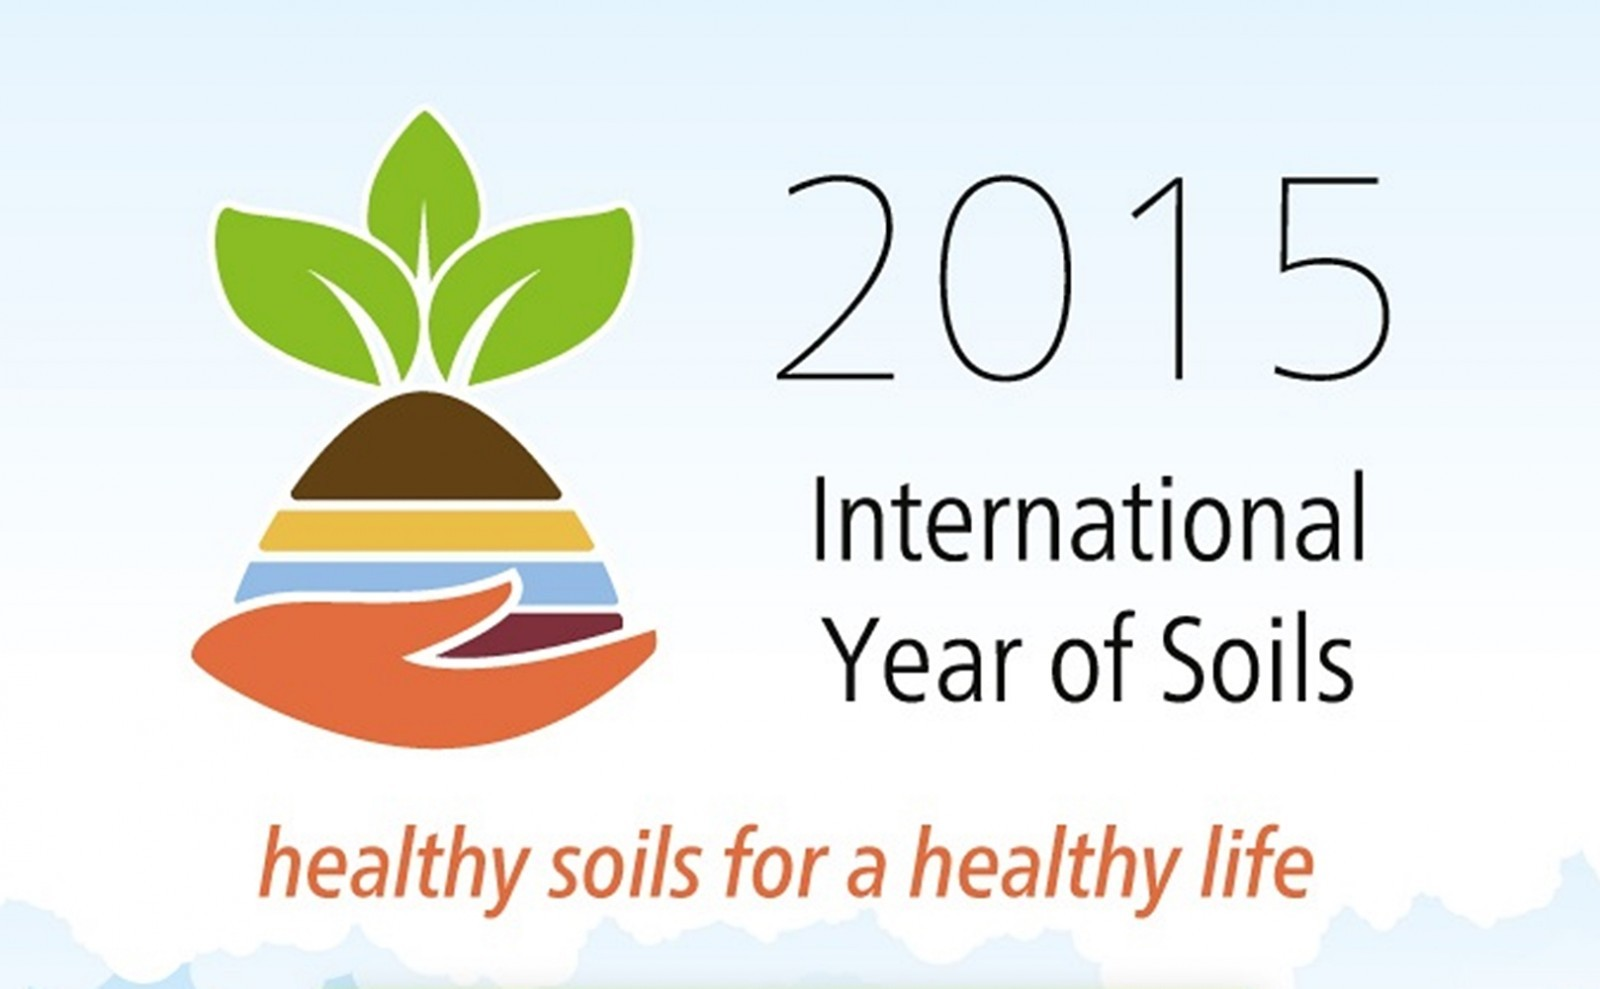 Intl Year of Soils 2015 Logo